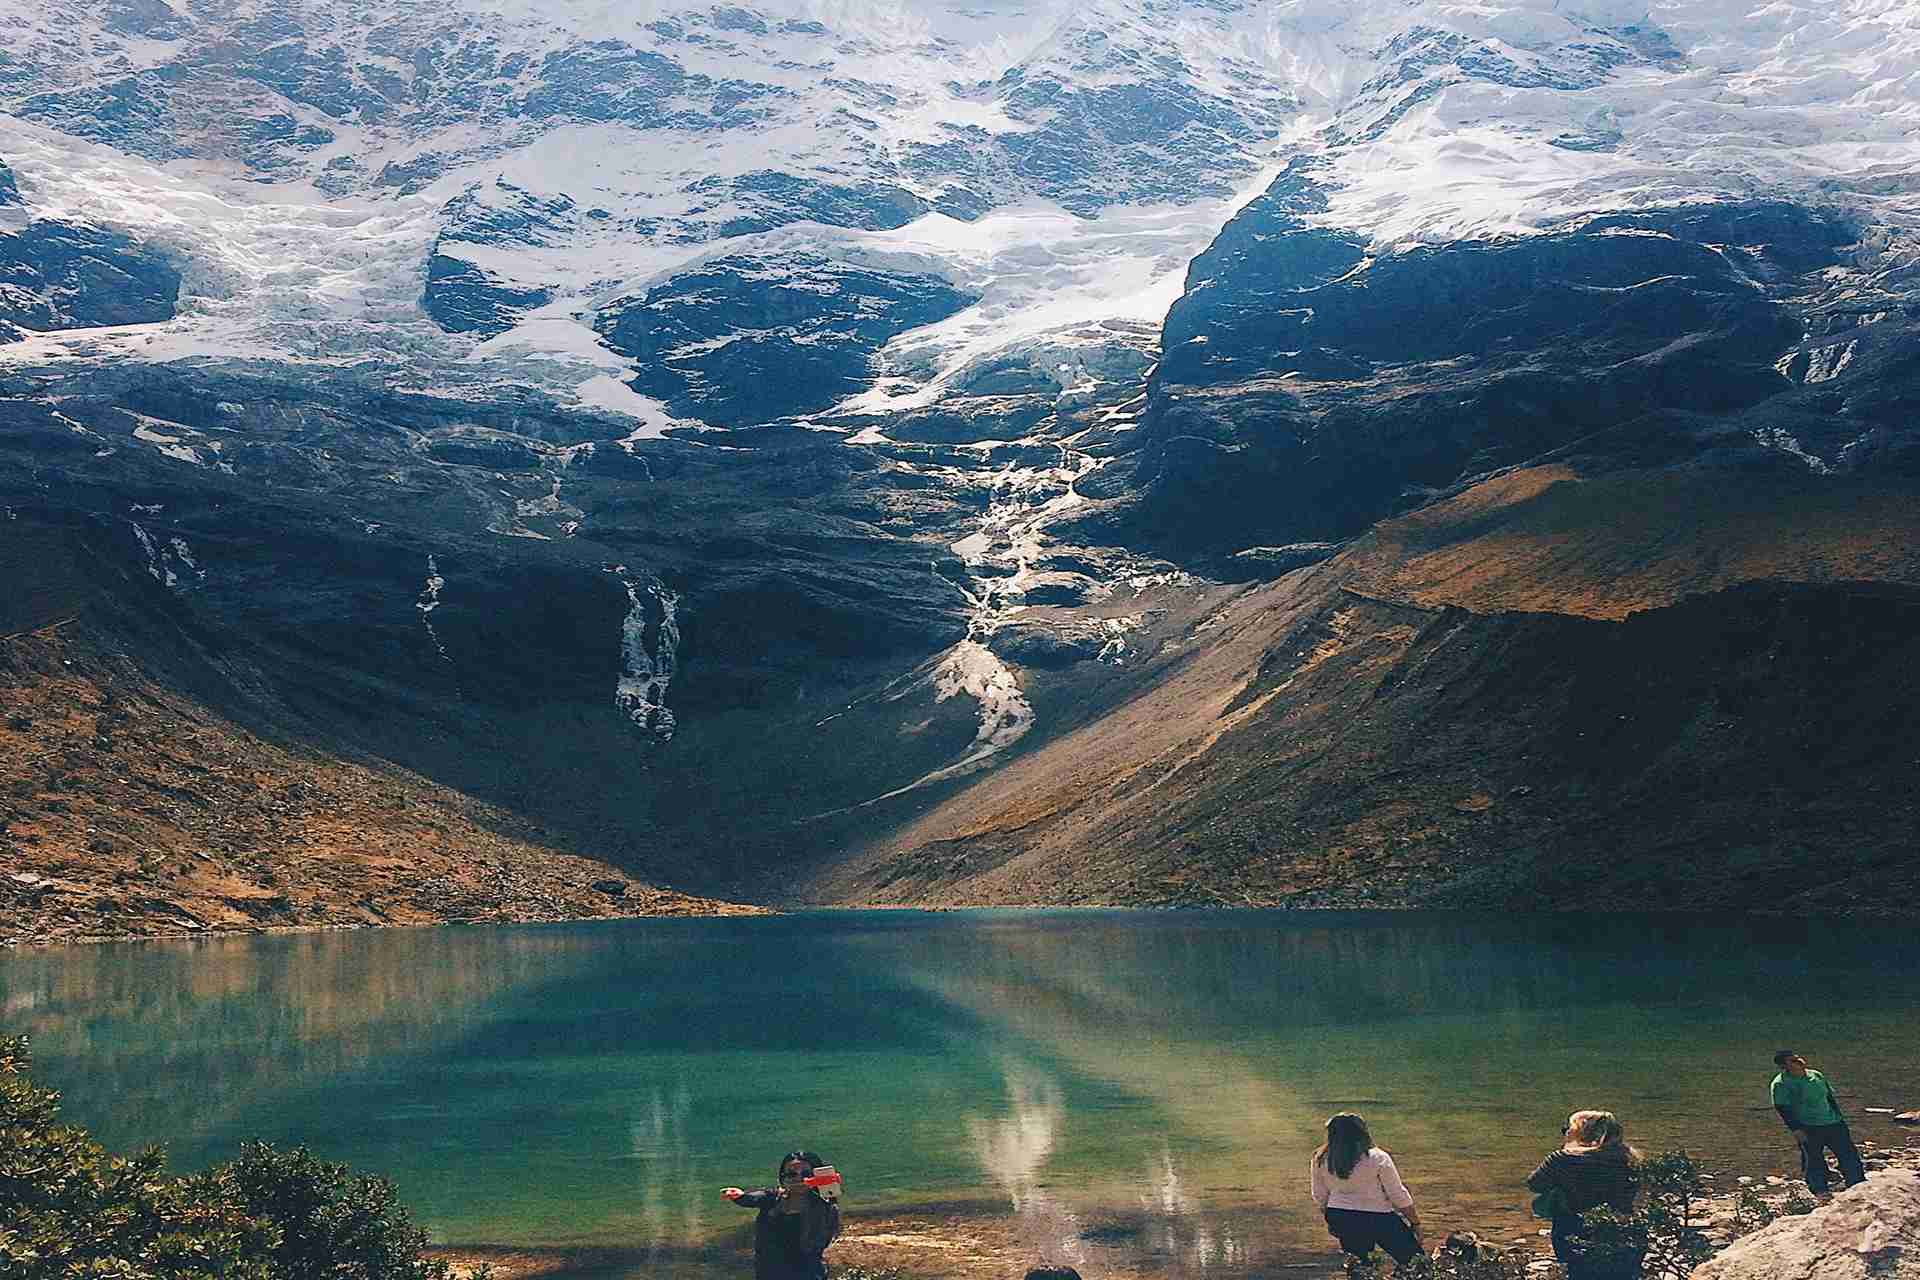 Humantay Lake 1 day - Inca Trail Salkantay Trek